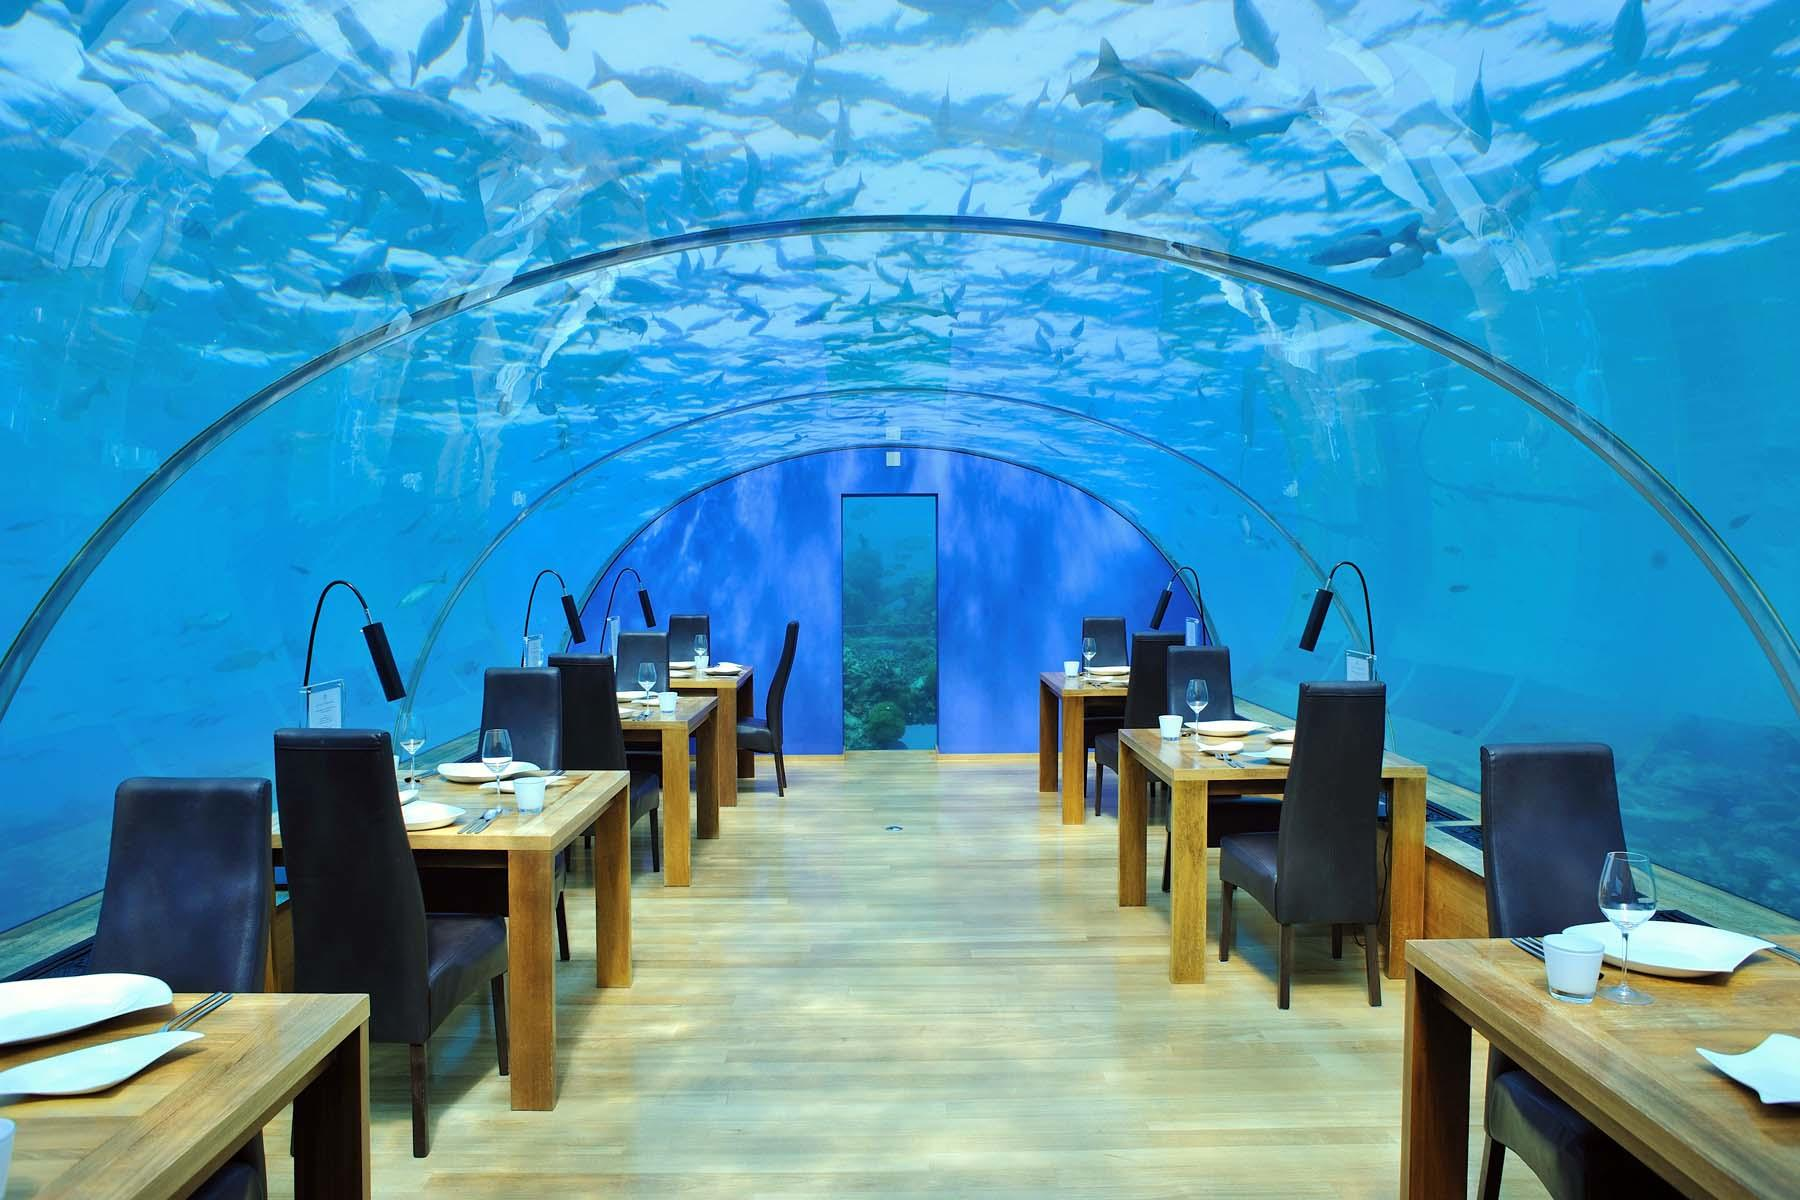 Underwater hotel Conrad Maldives The Worlds First Underwater Hotel Villa Just Openedplus Other Hotel Stays To Give You Panic Attack Travelstart The Weirdest Hotels You Can Stay In